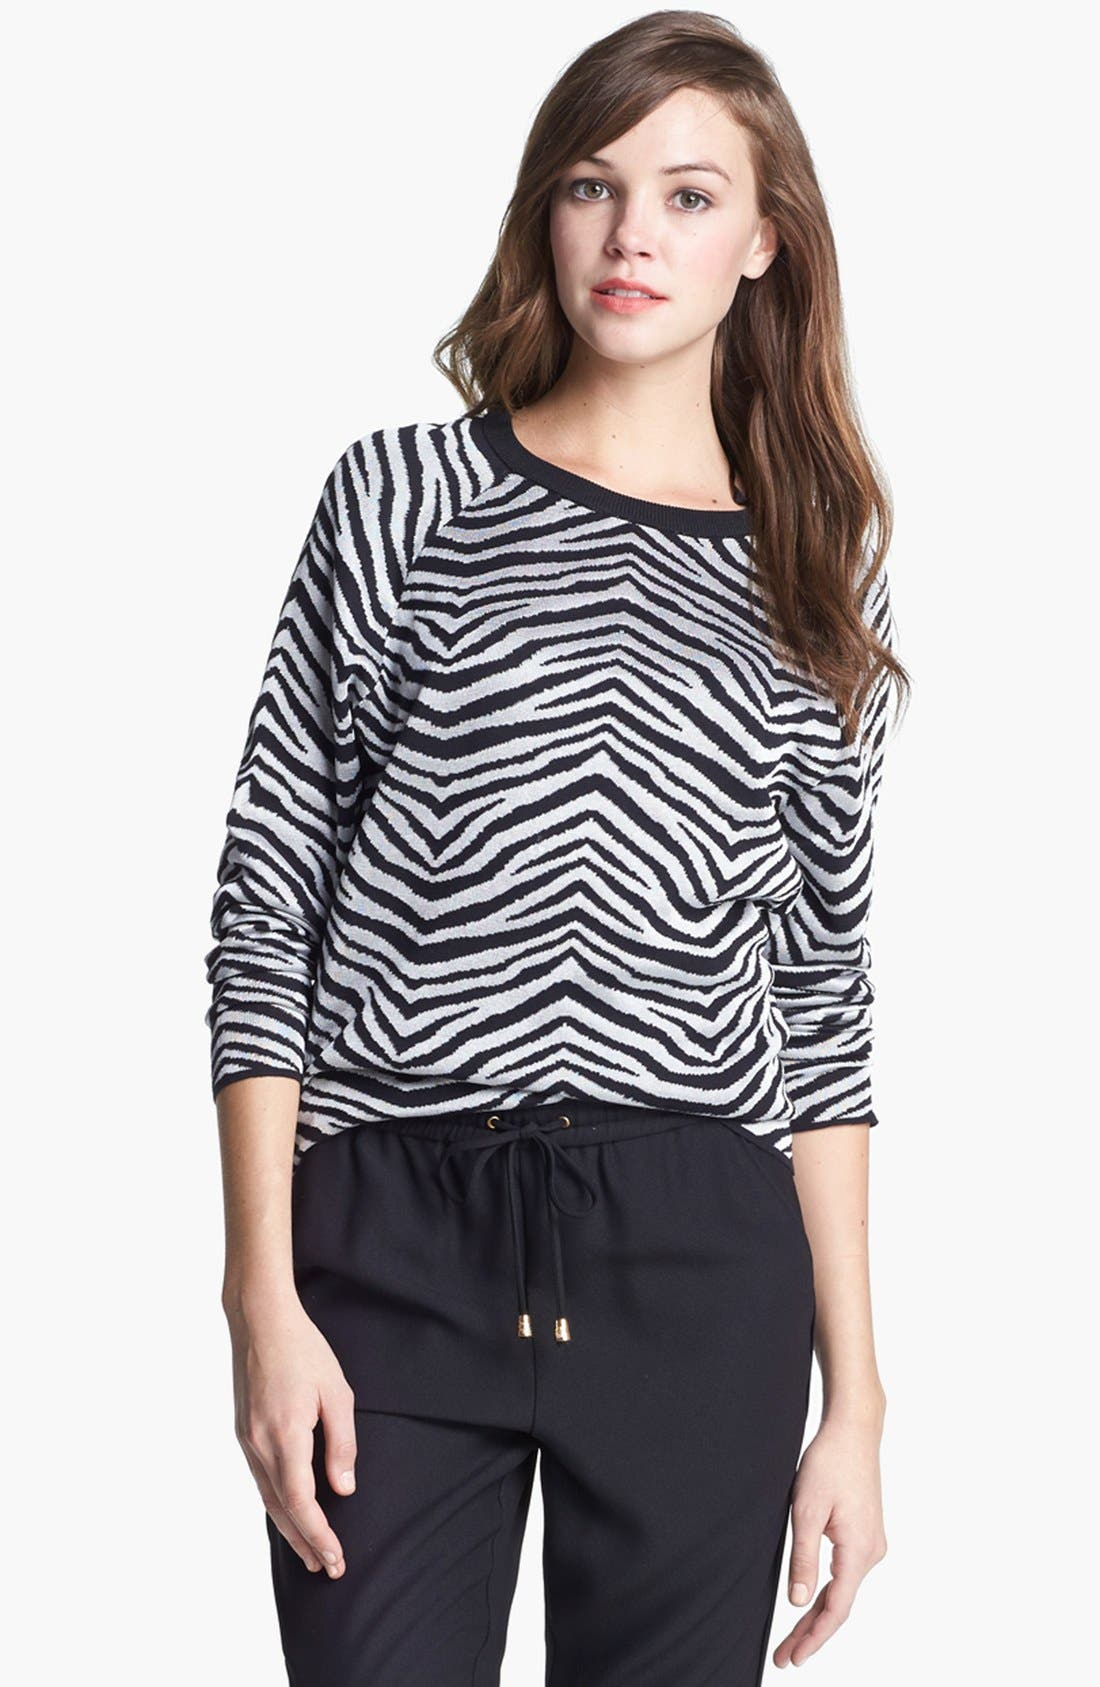 Alternate Image 1 Selected - Vince Camuto Zebra Stripe Top (Regular & Petite)